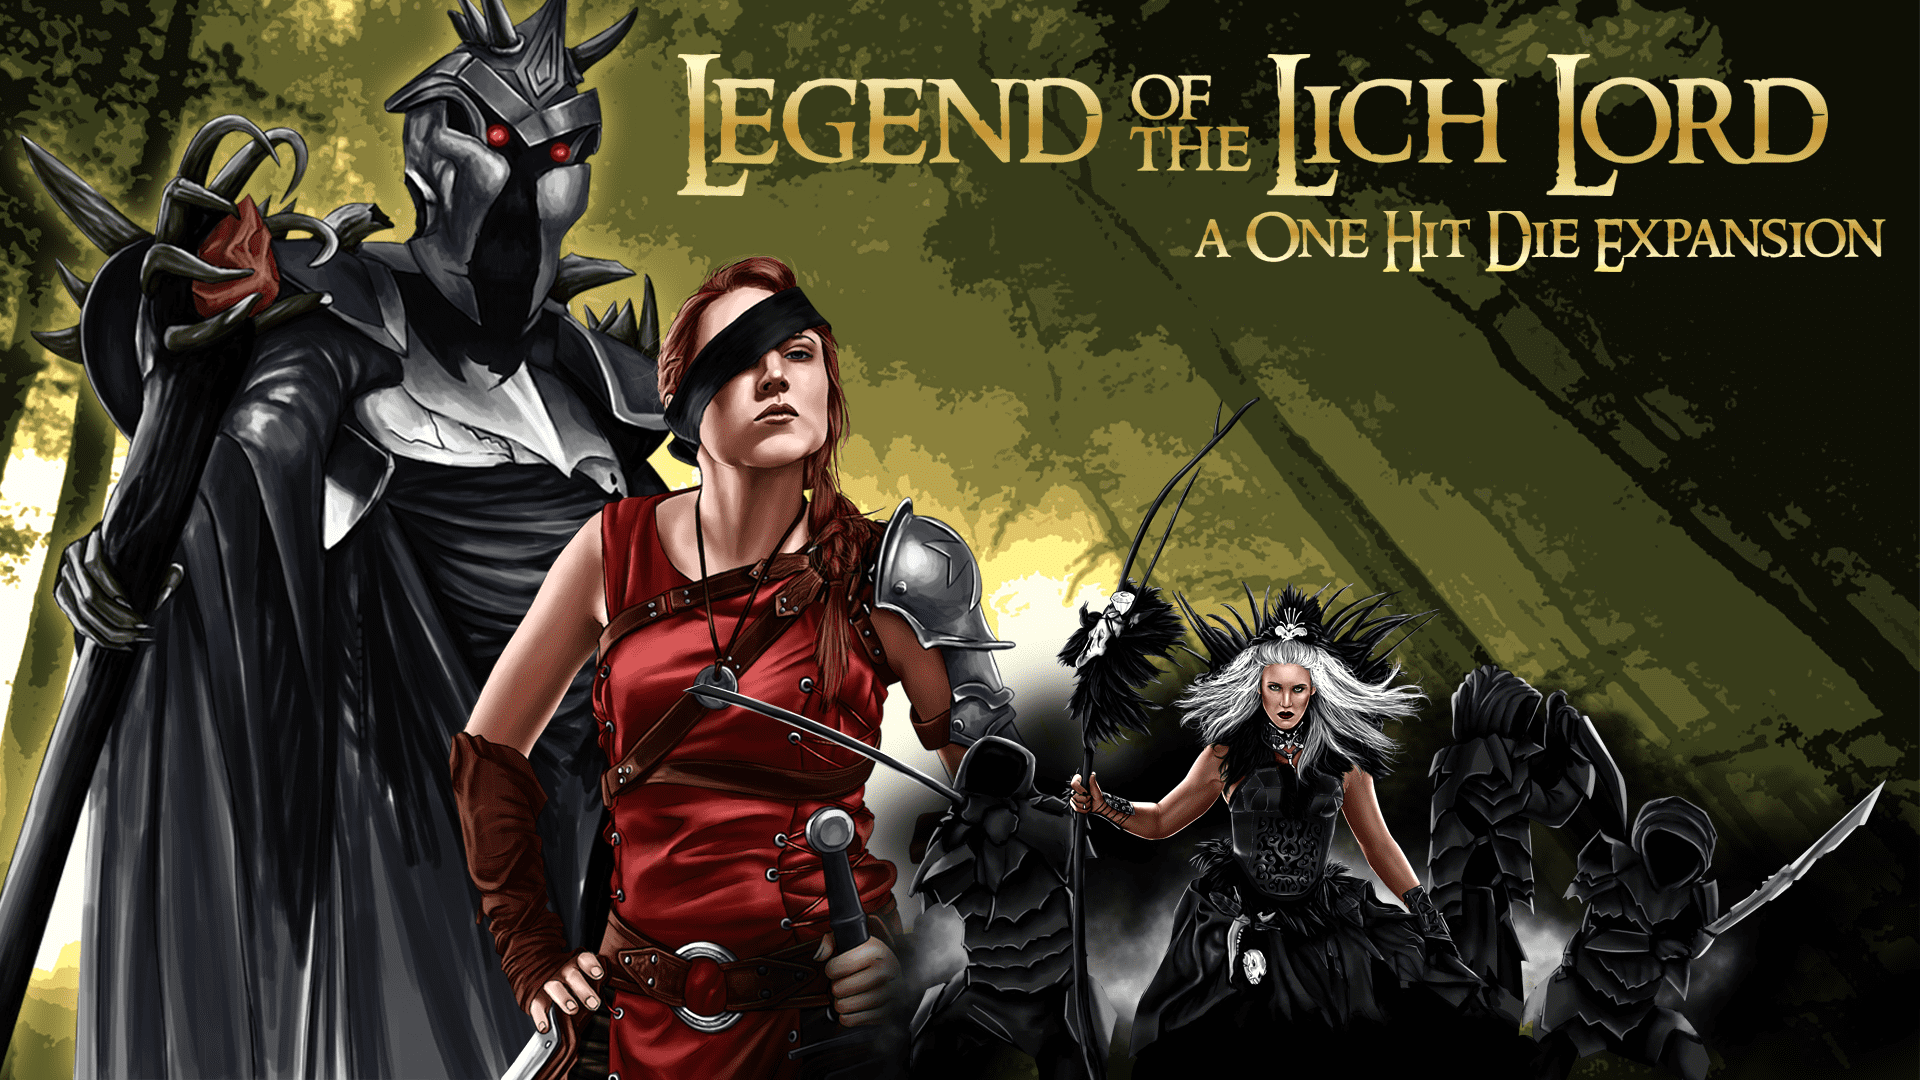 One Hit Die Season 2 Legend of the Lich Lord